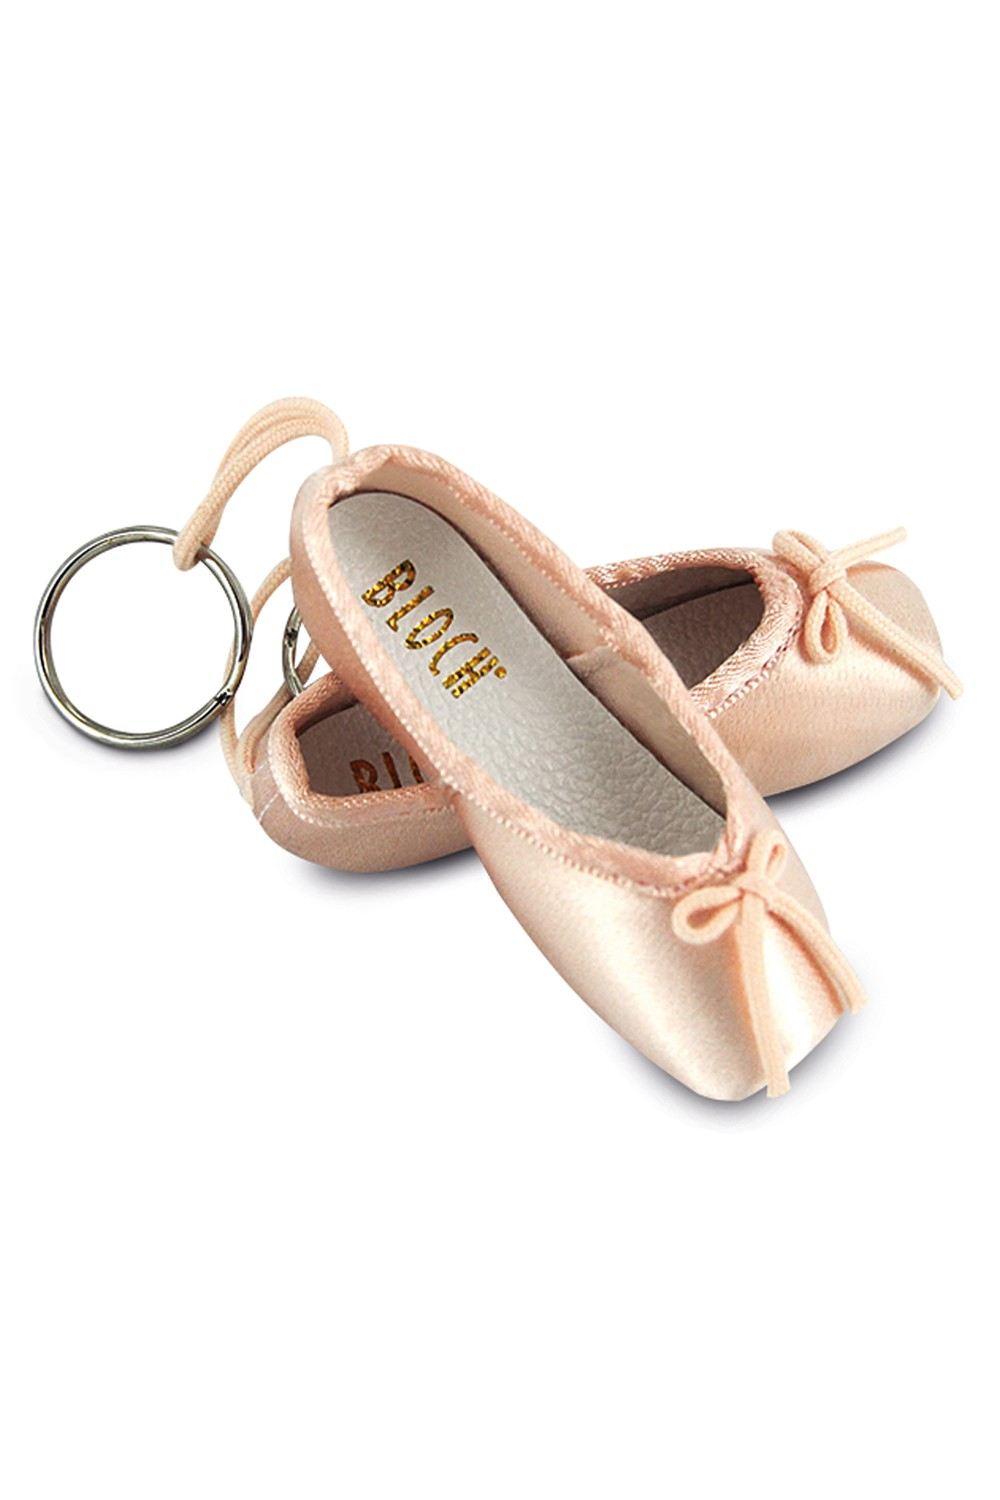 Mini Pointe Shoe Key Ring 6 Pak Dance Shoes Accessories